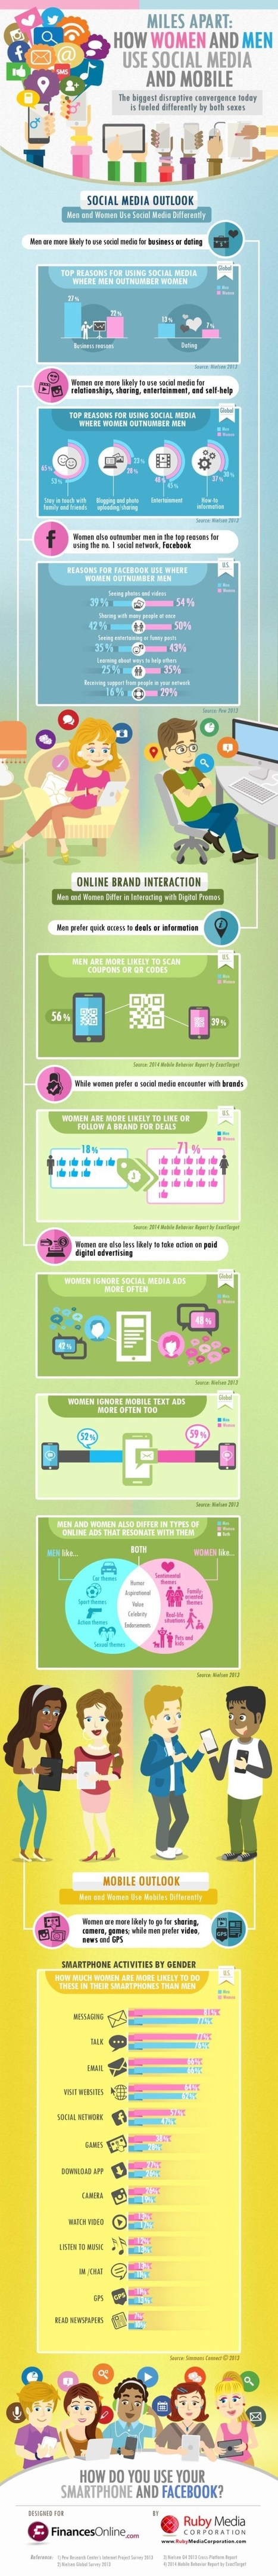 How Men And Women Stack Up On Social Media (Infographic)   Social Media sites   Scoop.it